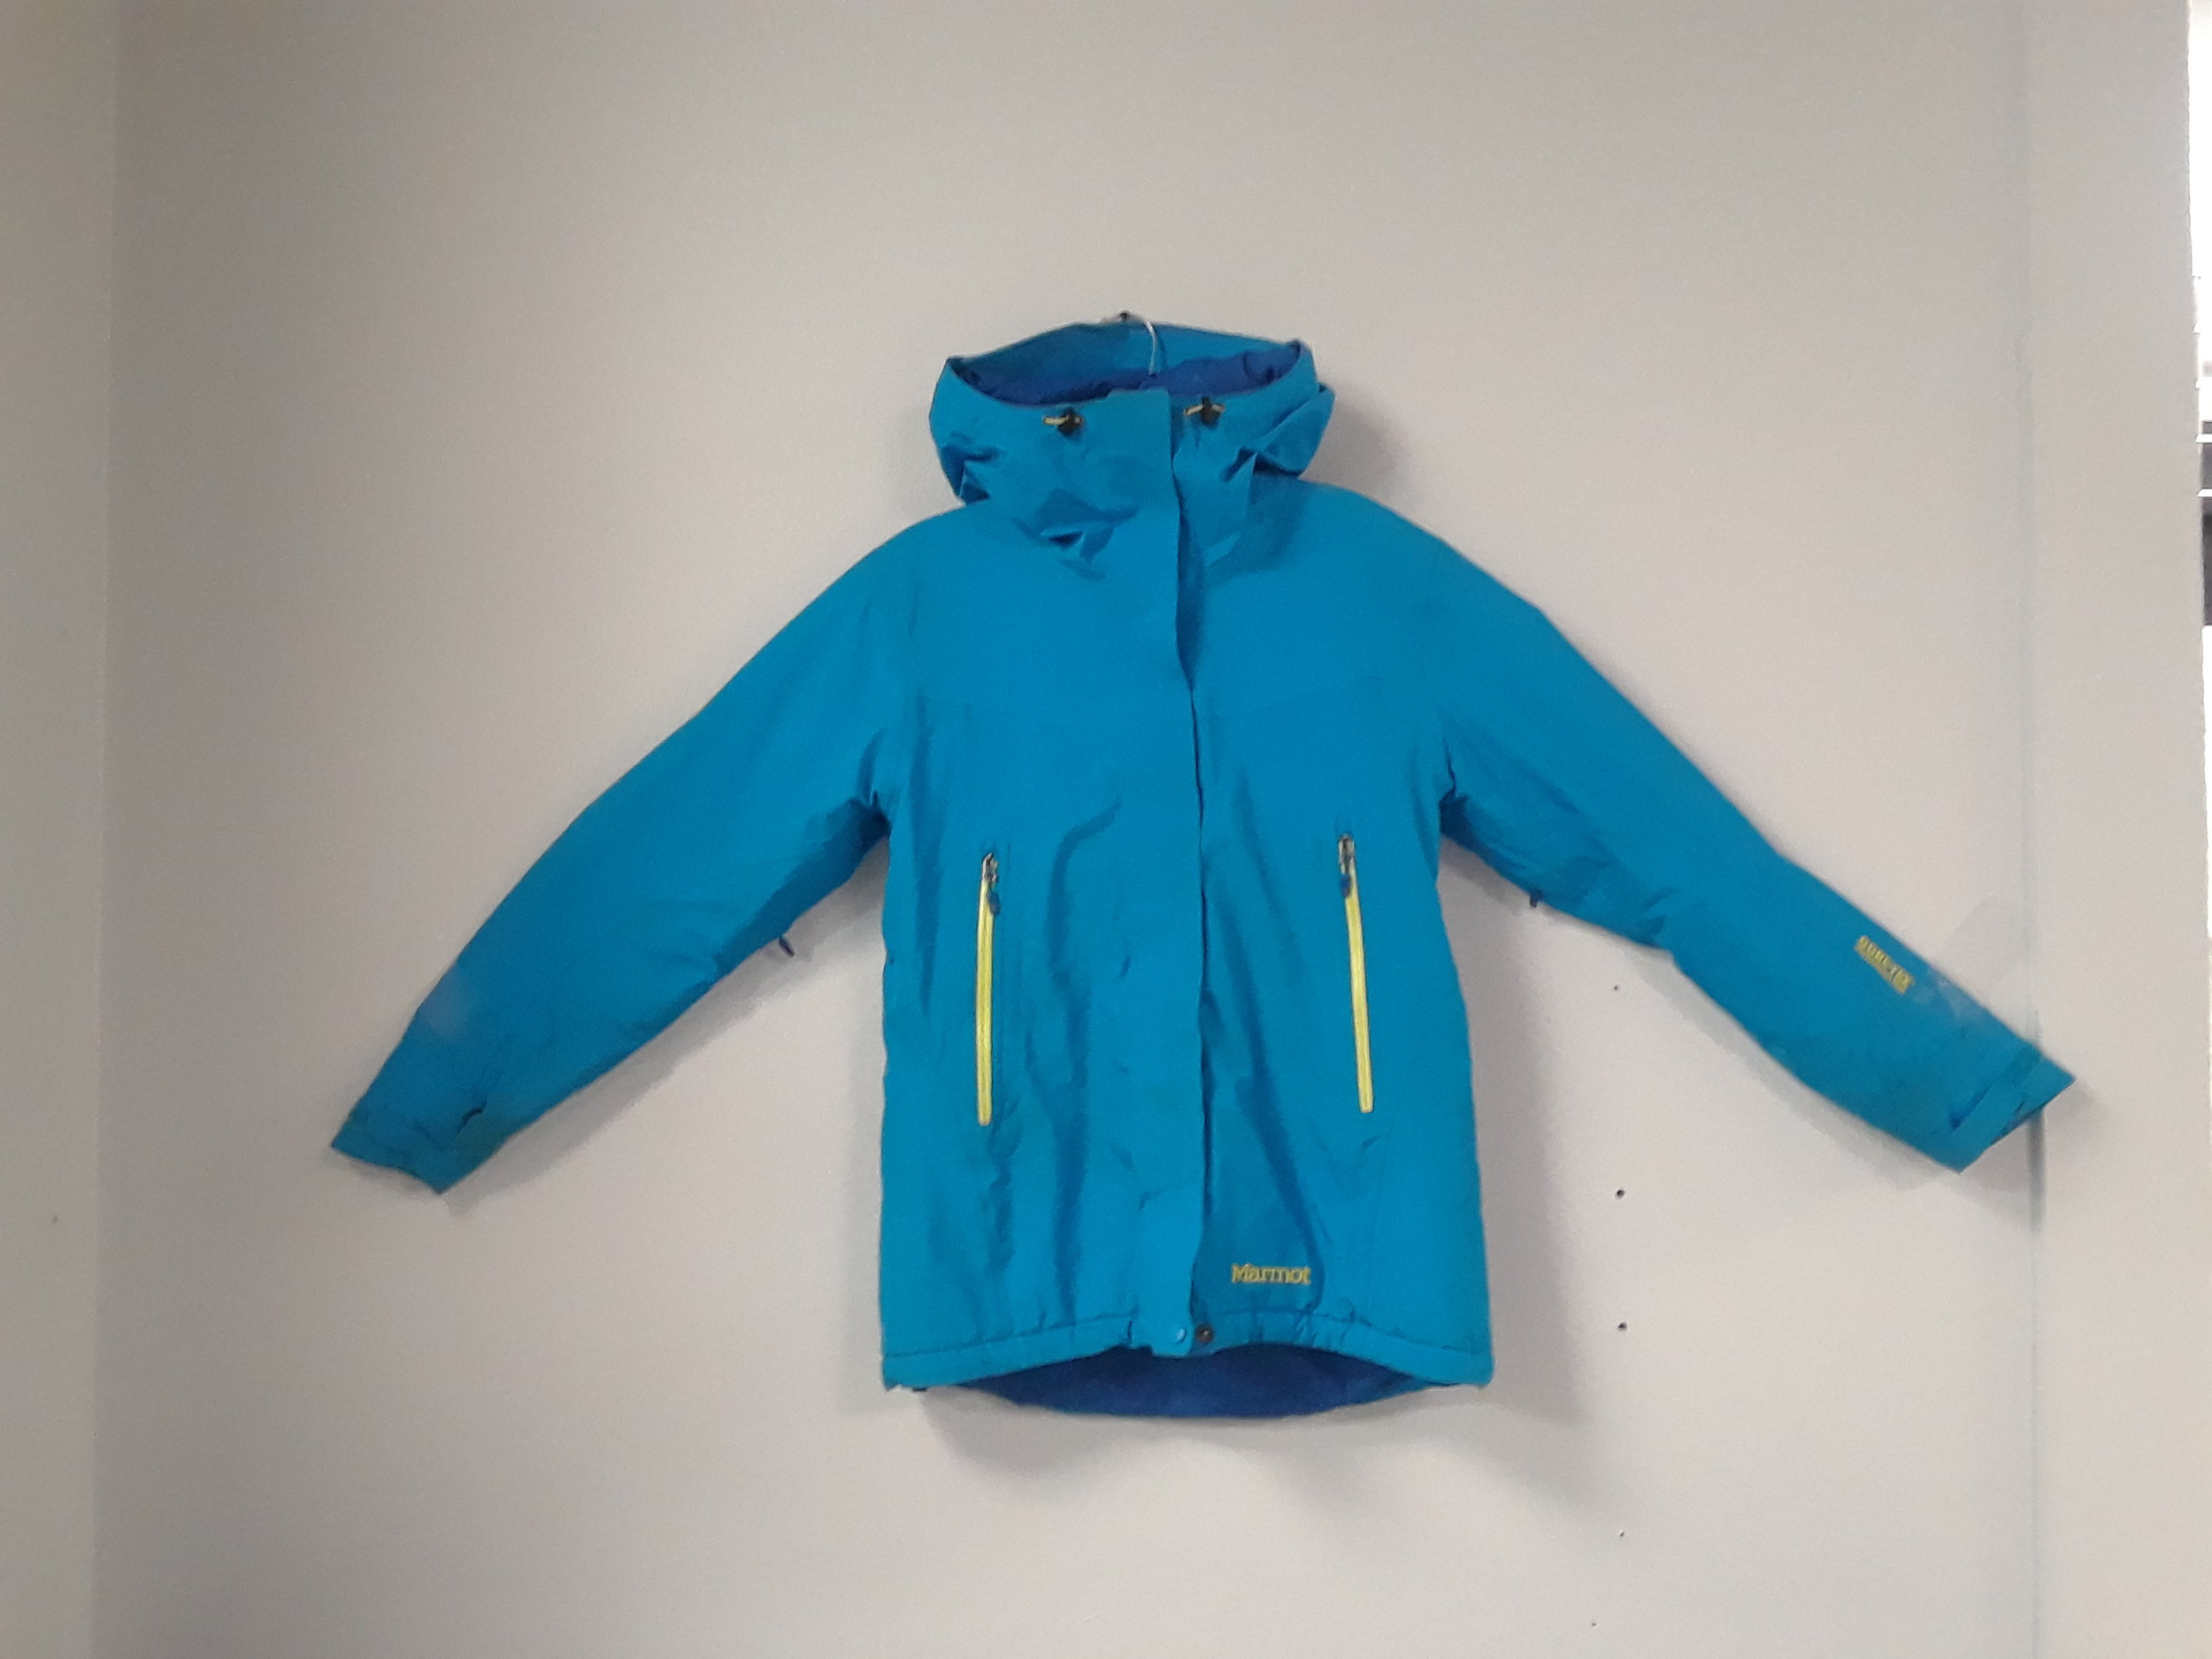 Stay warm and dry on the hill this season with this down insulated Marmot Gore-Tex Performance jacket. The size is a women's medium and we have it priced at $149.